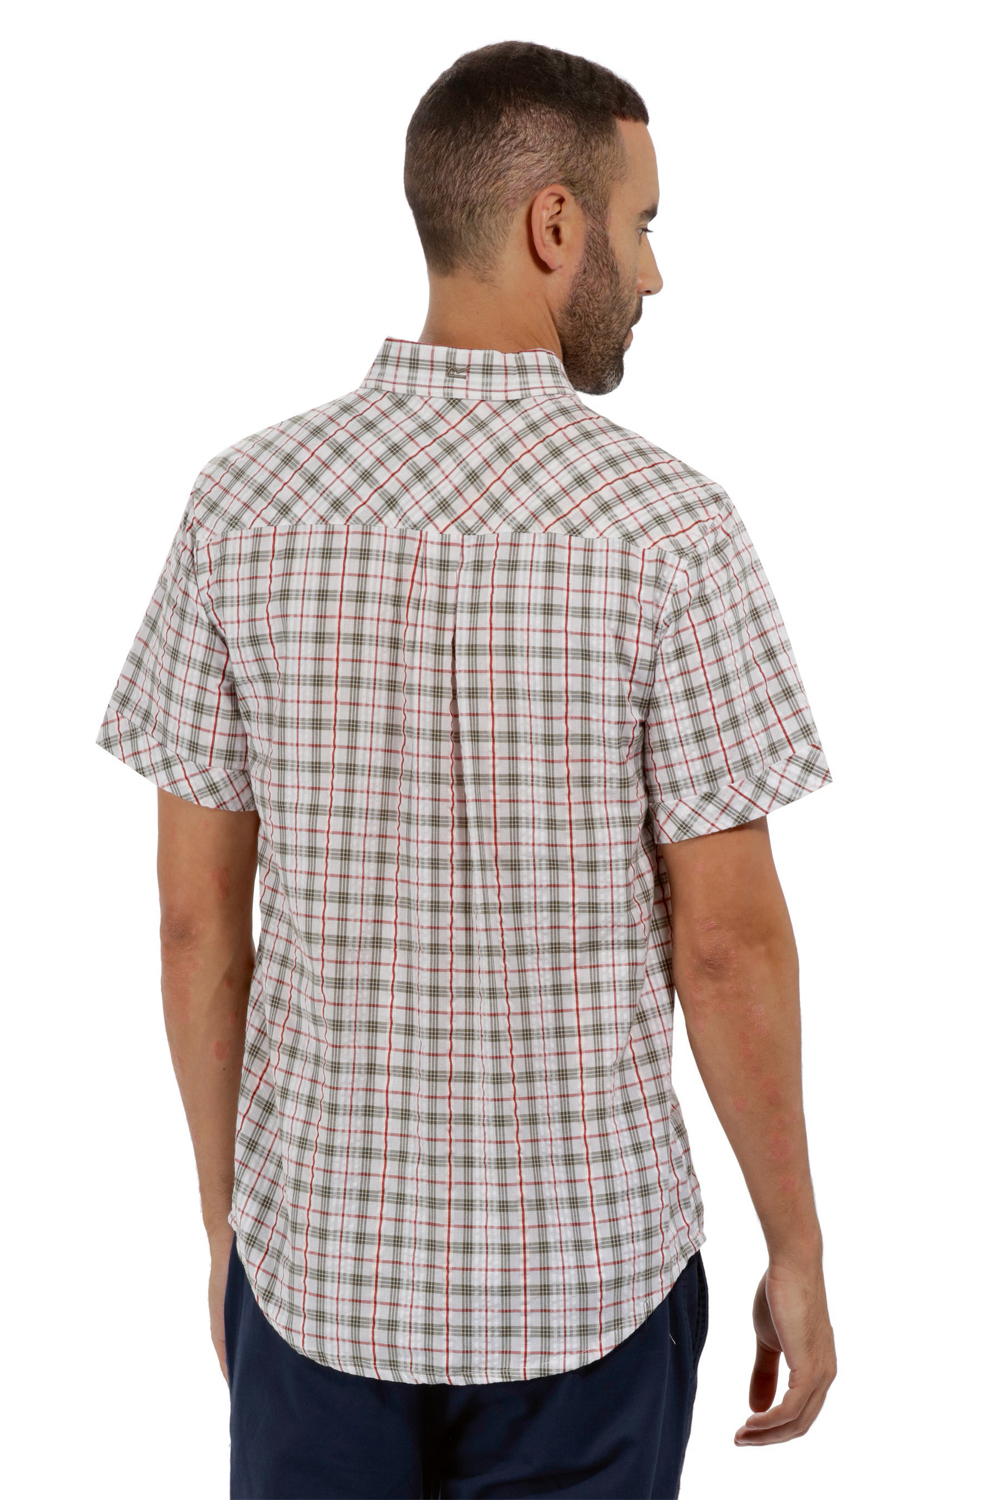 Regatta-Mens-Deakin-II-Coolweave-Cotton-Short-Sleeved-Summer-Check-Shirt-RRP-50 thumbnail 15